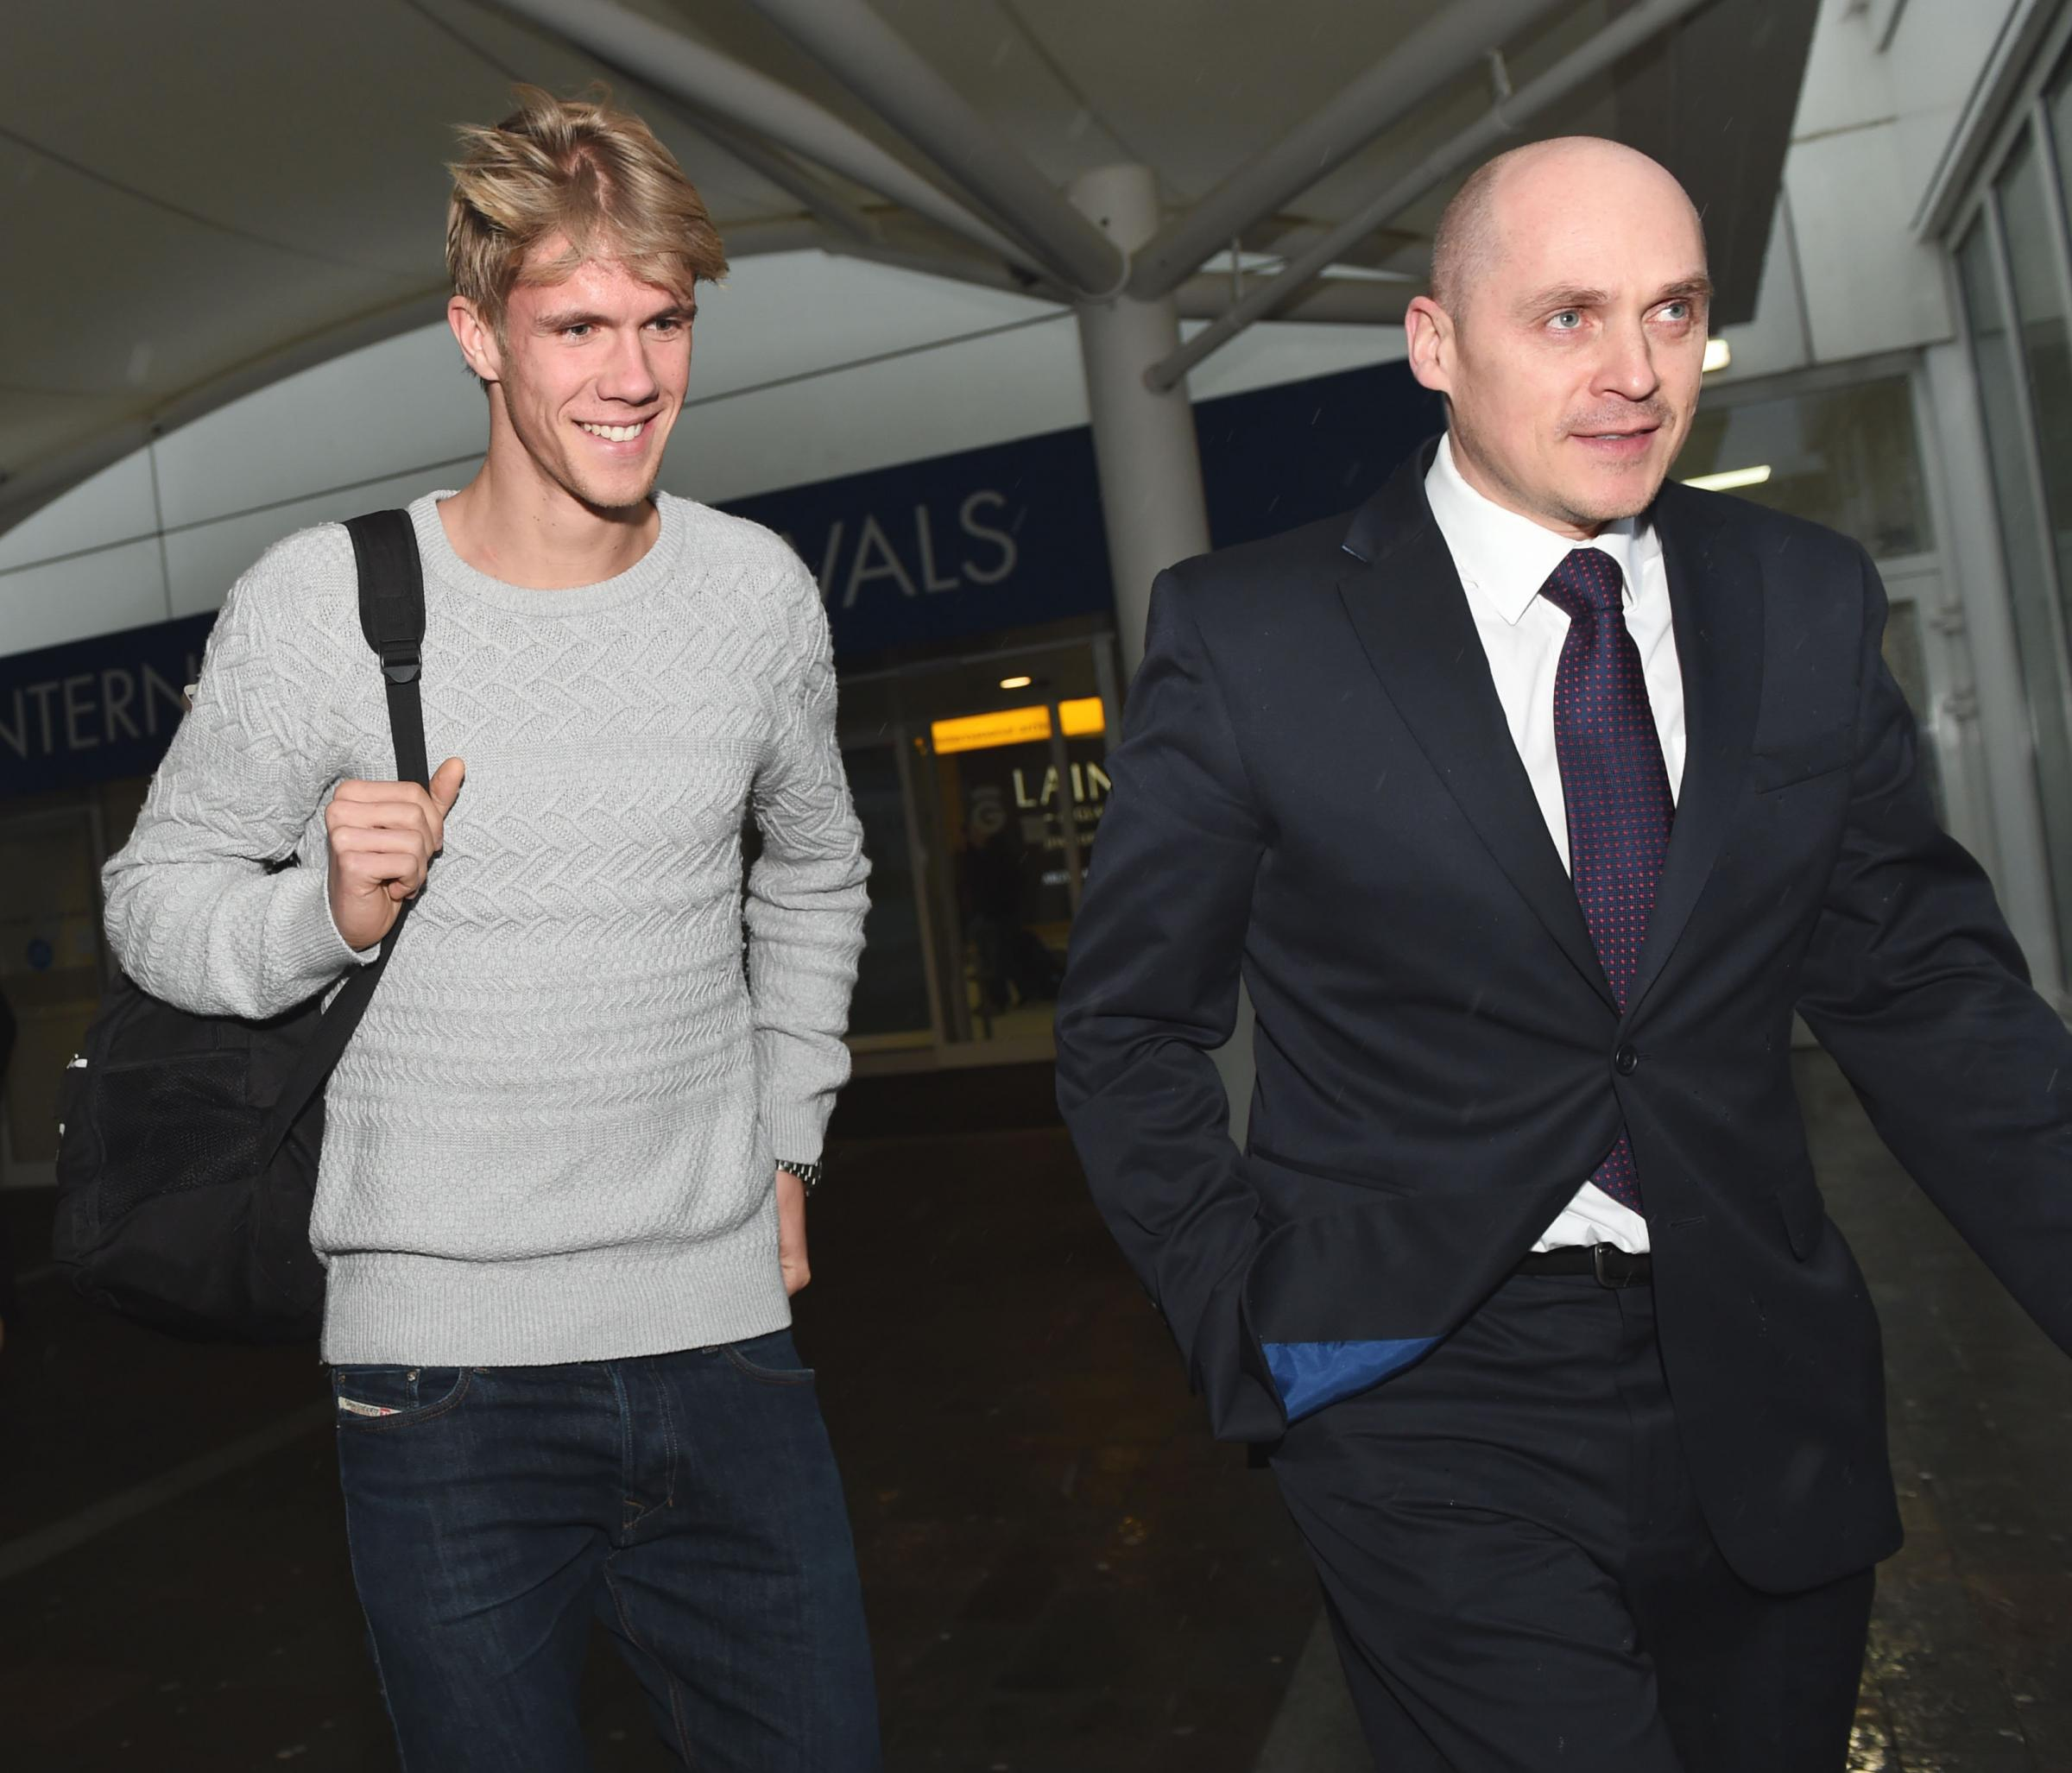 THE BHOY IS BACK IN TOWN: Kristoffer Ajer is escorted out of Glasgow Airport by Celtic physiotherapist Tim Williamson after flying in for talks